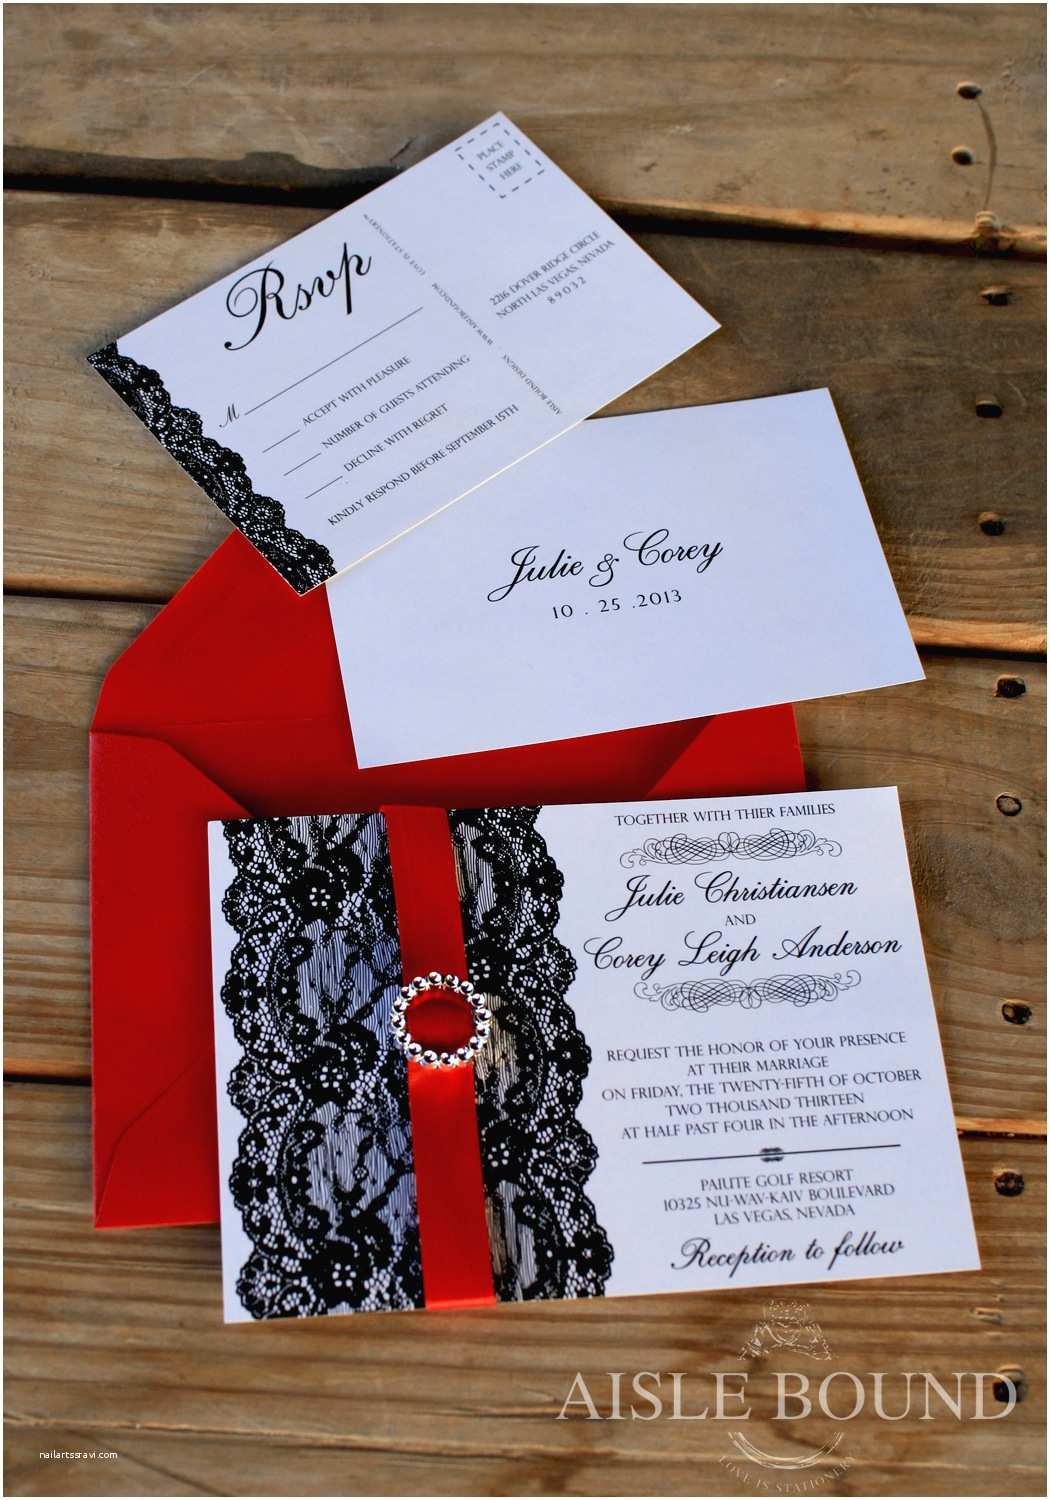 diy yellow and white wedding invitation 1000 ideas about red wedding invitations on pinterest red